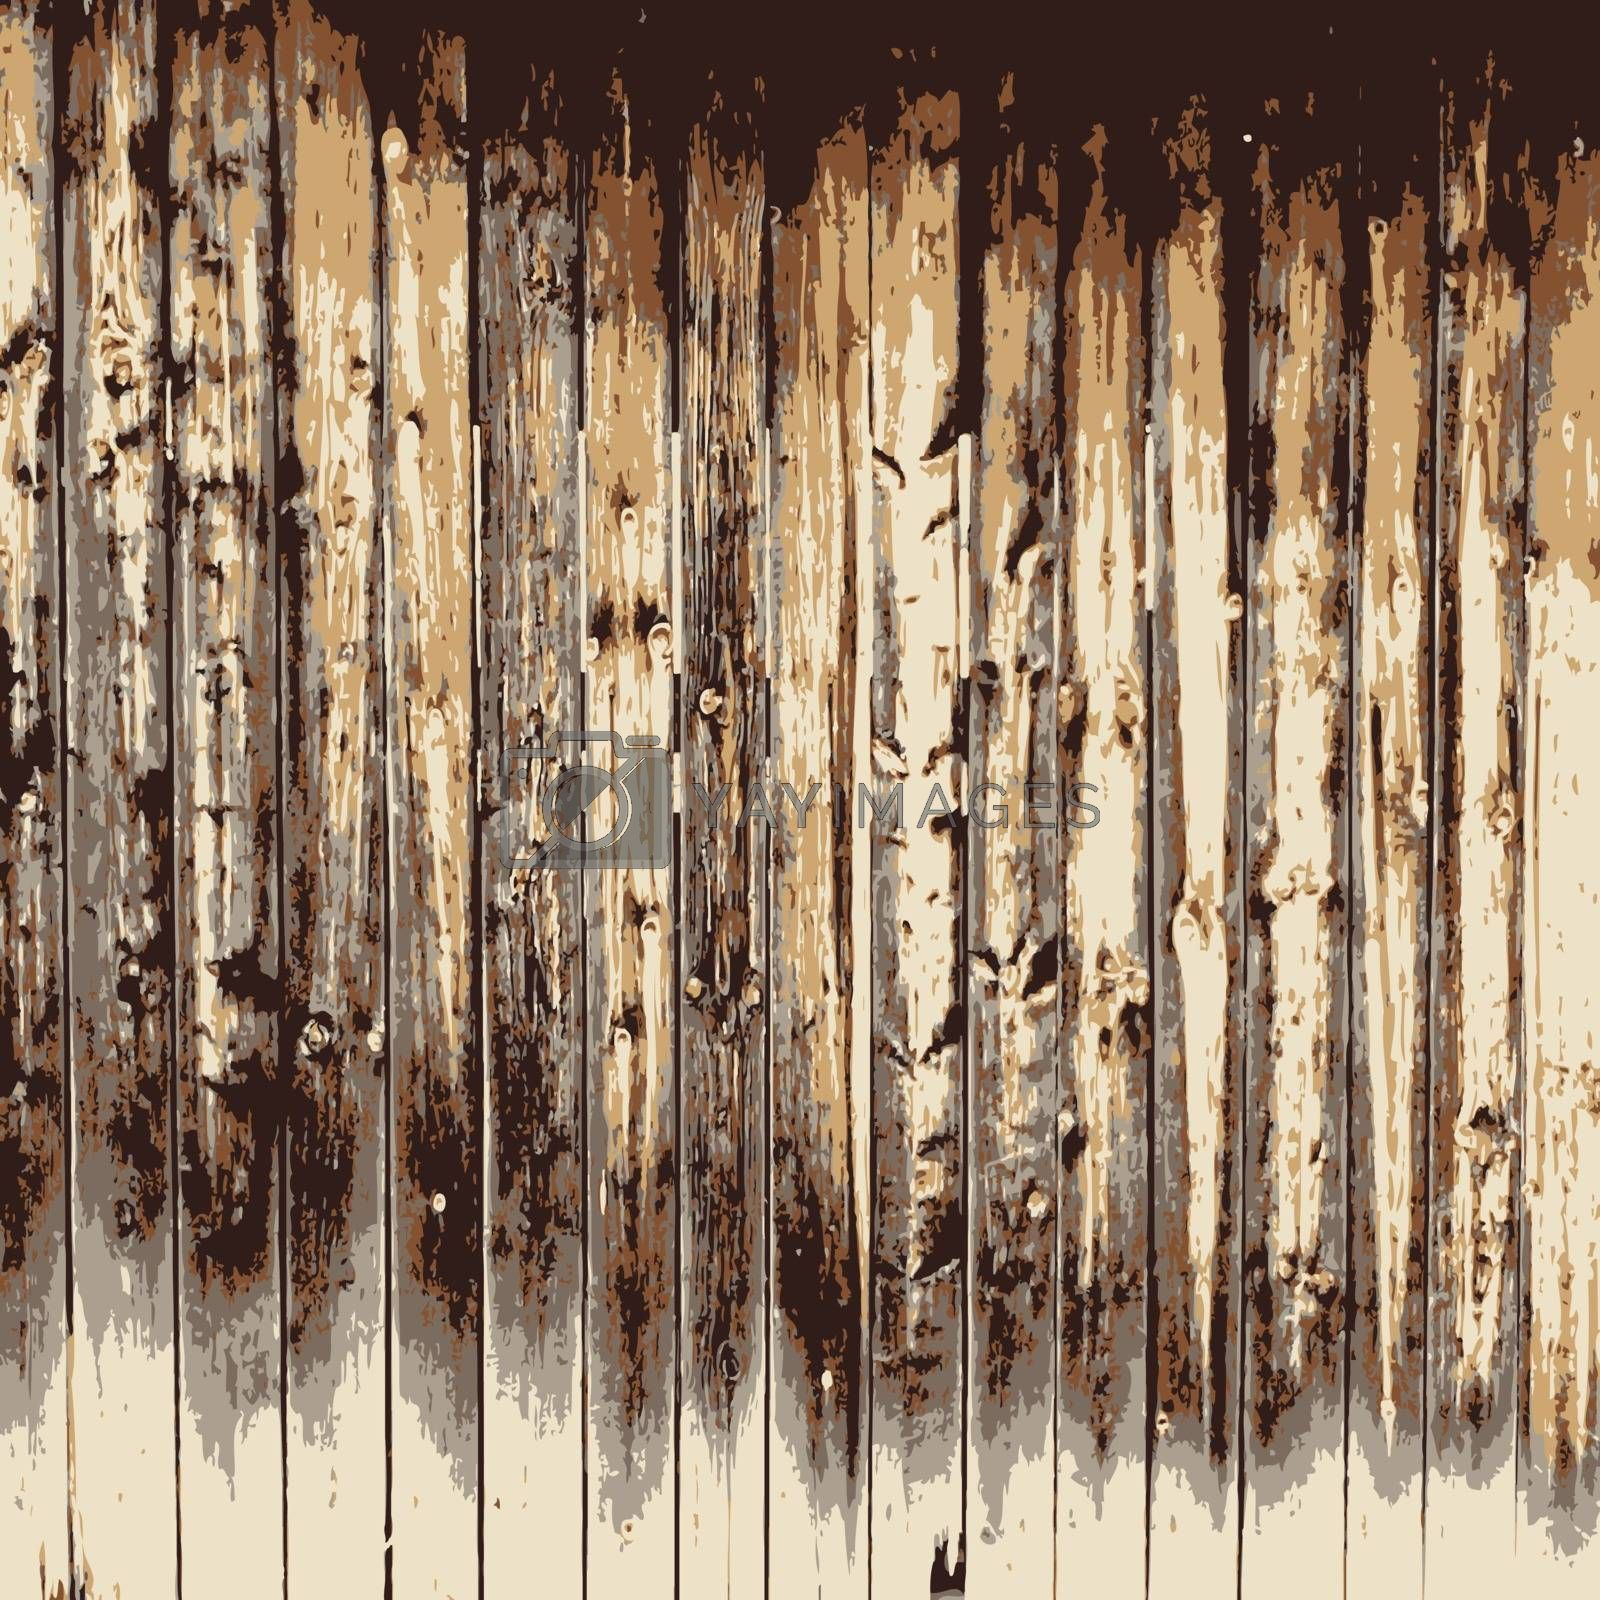 Wooden texture background, Realistic plank. Vector illustration. by aarrows